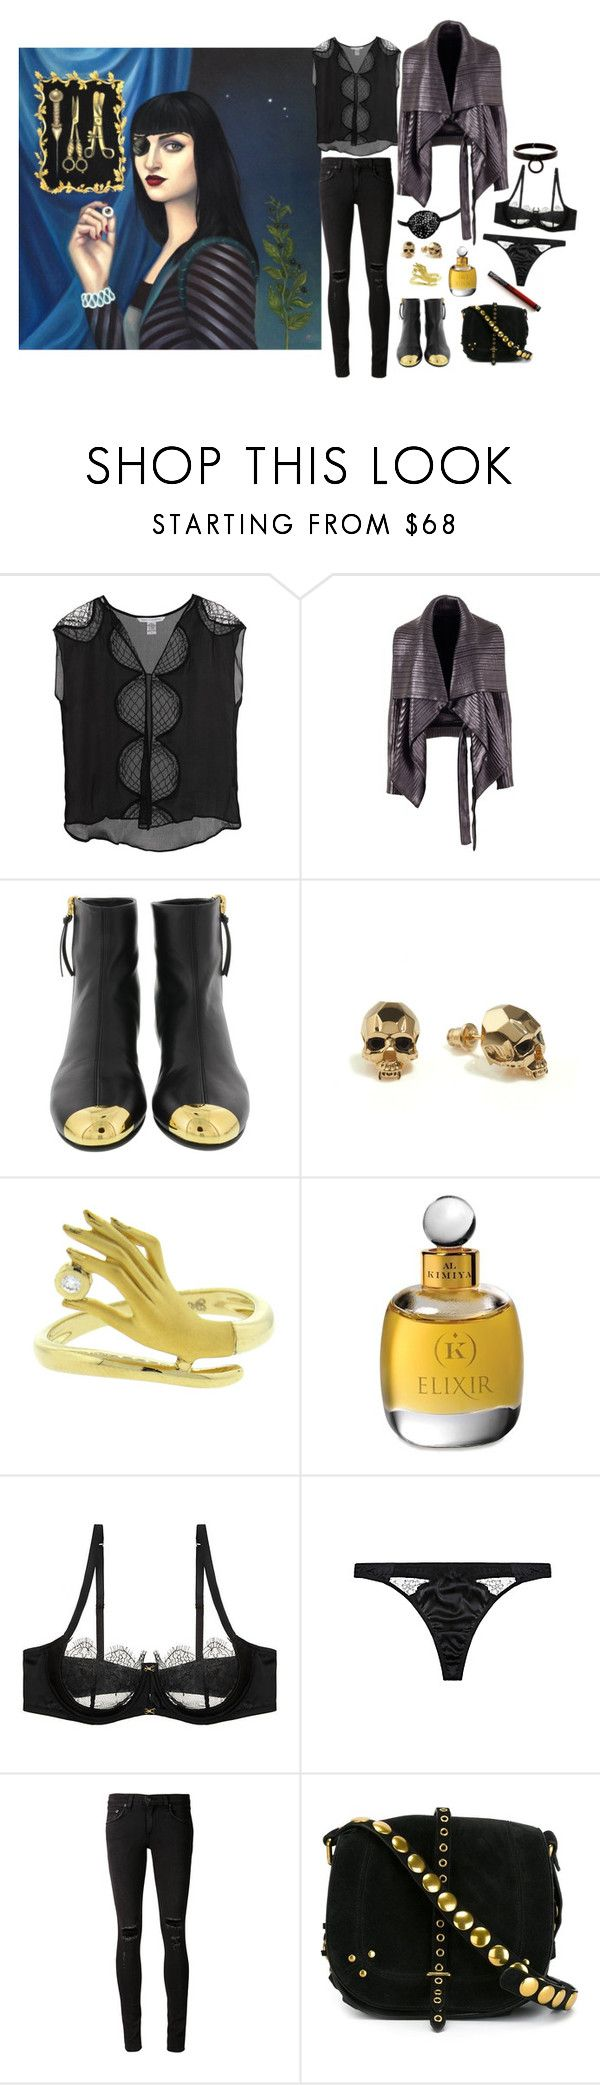 """Ocular Prosthesis"" by ghoulnextdoor ❤ liked on Polyvore featuring Diane Von Furstenberg, Gareth Pugh, Giuseppe Zanotti, Kasun, Carrera y Carrera, rag & bone/JEAN, Jérôme Dreyfuss, women's clothing, women and female"